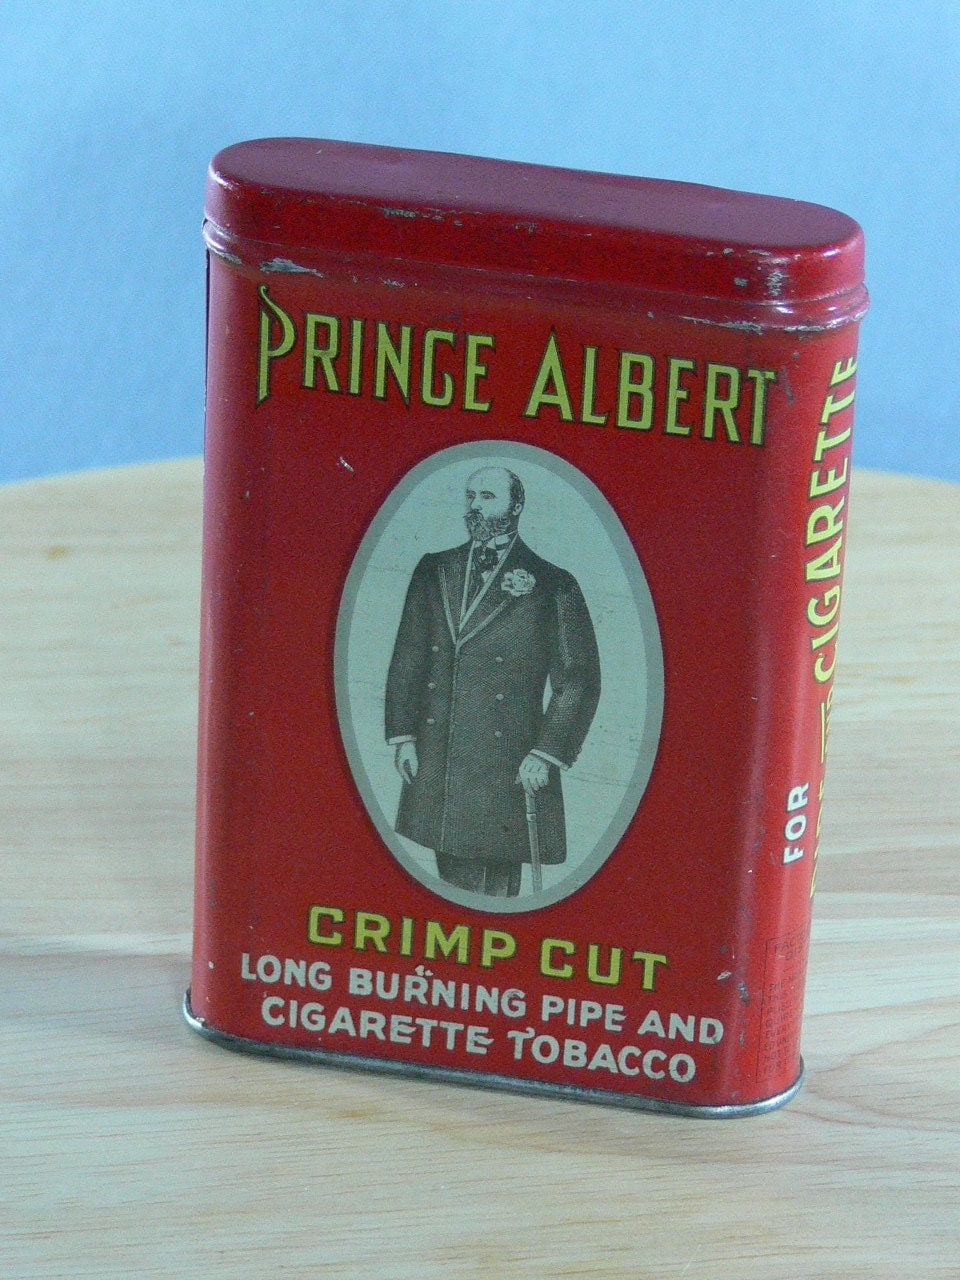 Dating prince albert tobacco cans